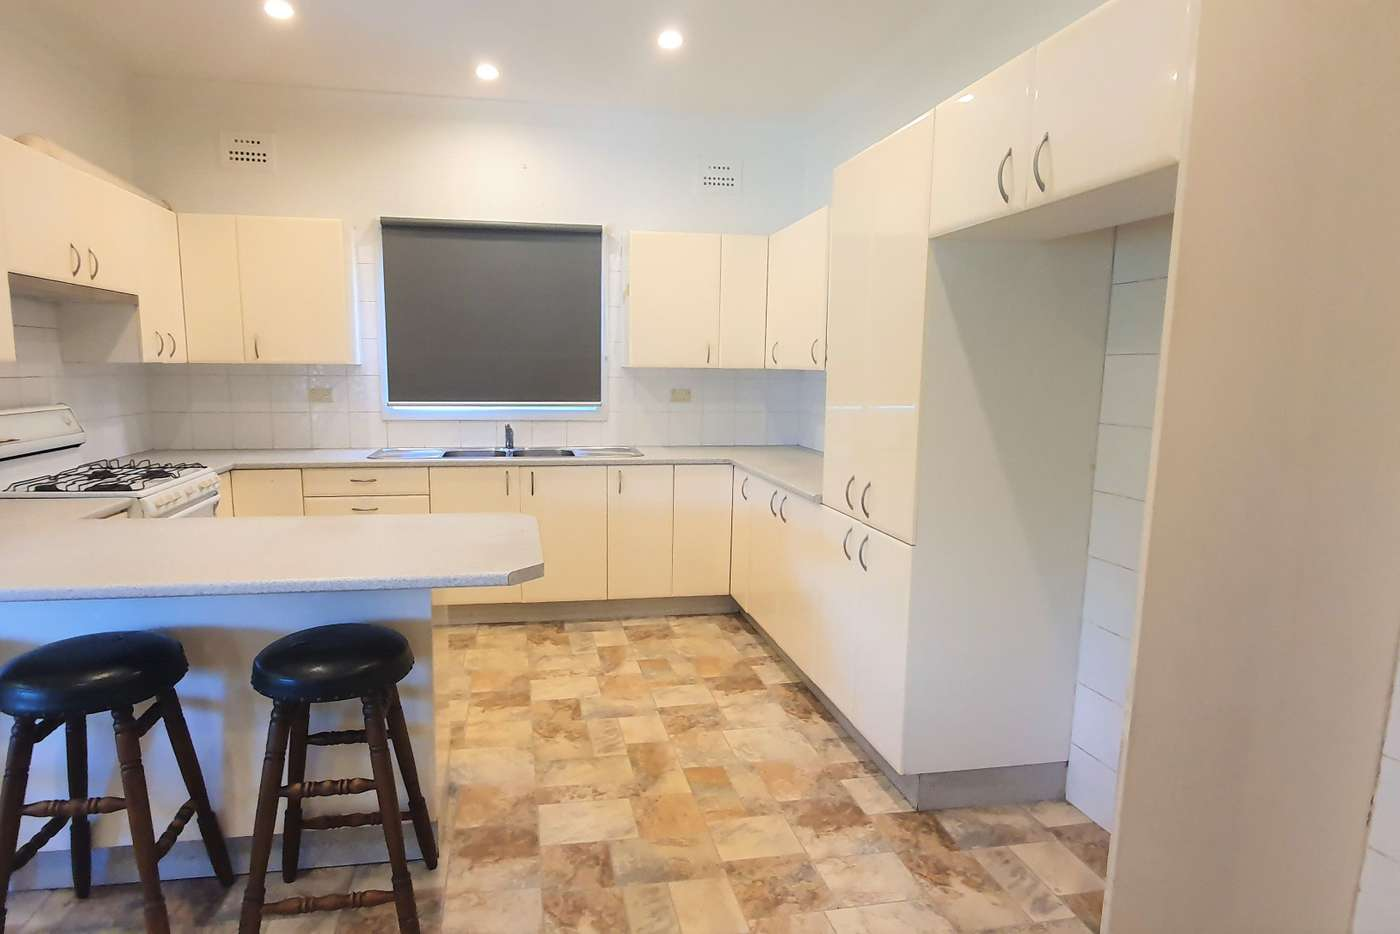 Sixth view of Homely house listing, 984 Punchbowl Road, Punchbowl NSW 2196